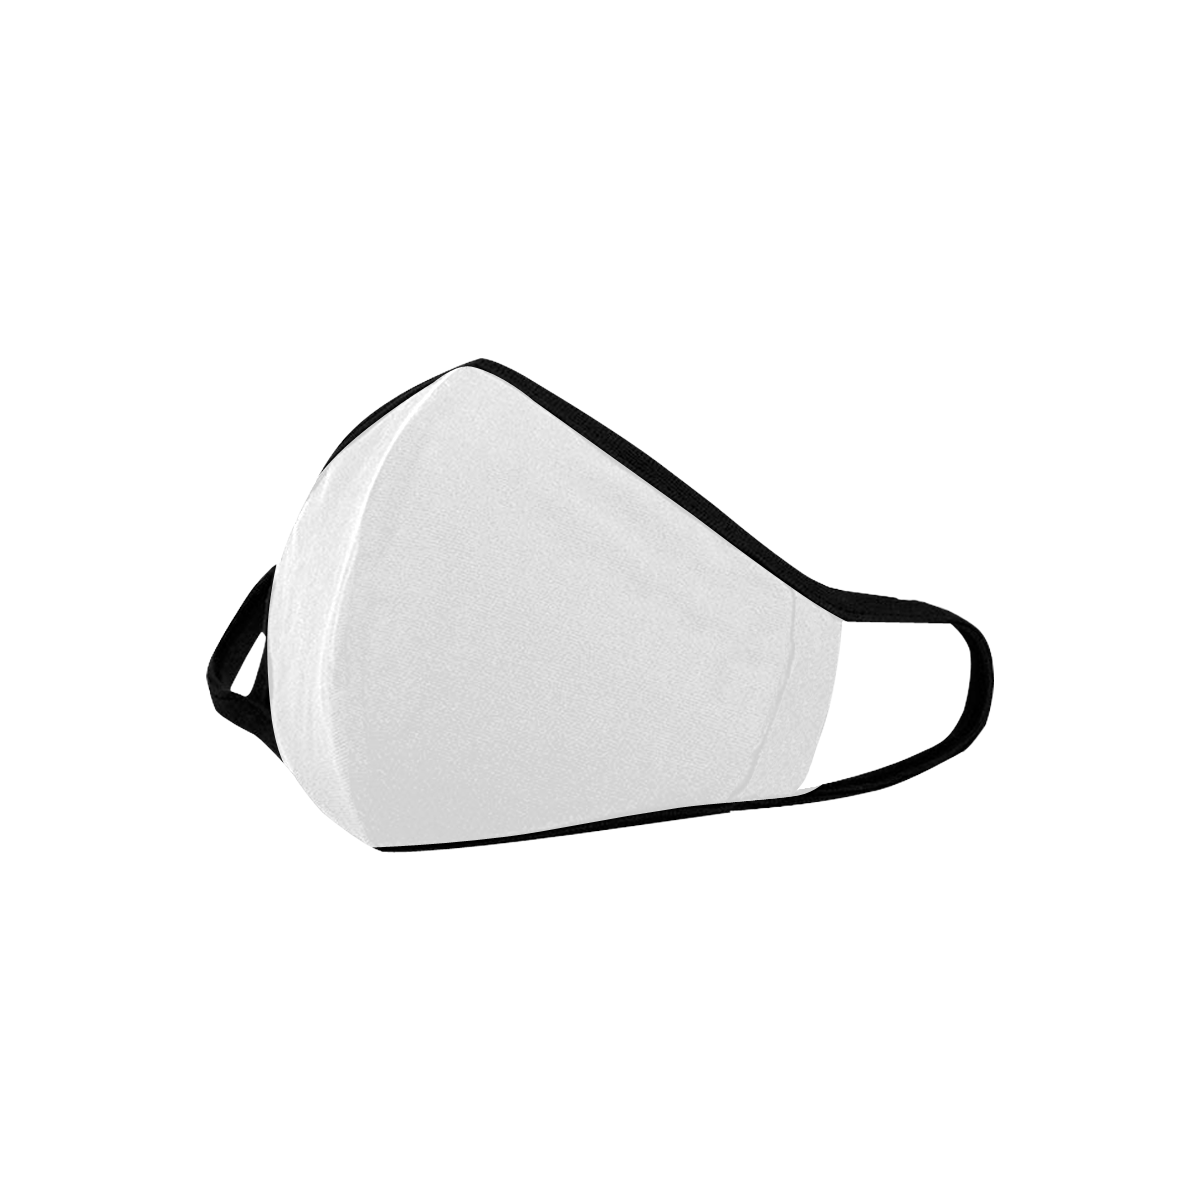 Mouth Mask (2 Filters Included) (Non-medical Products)